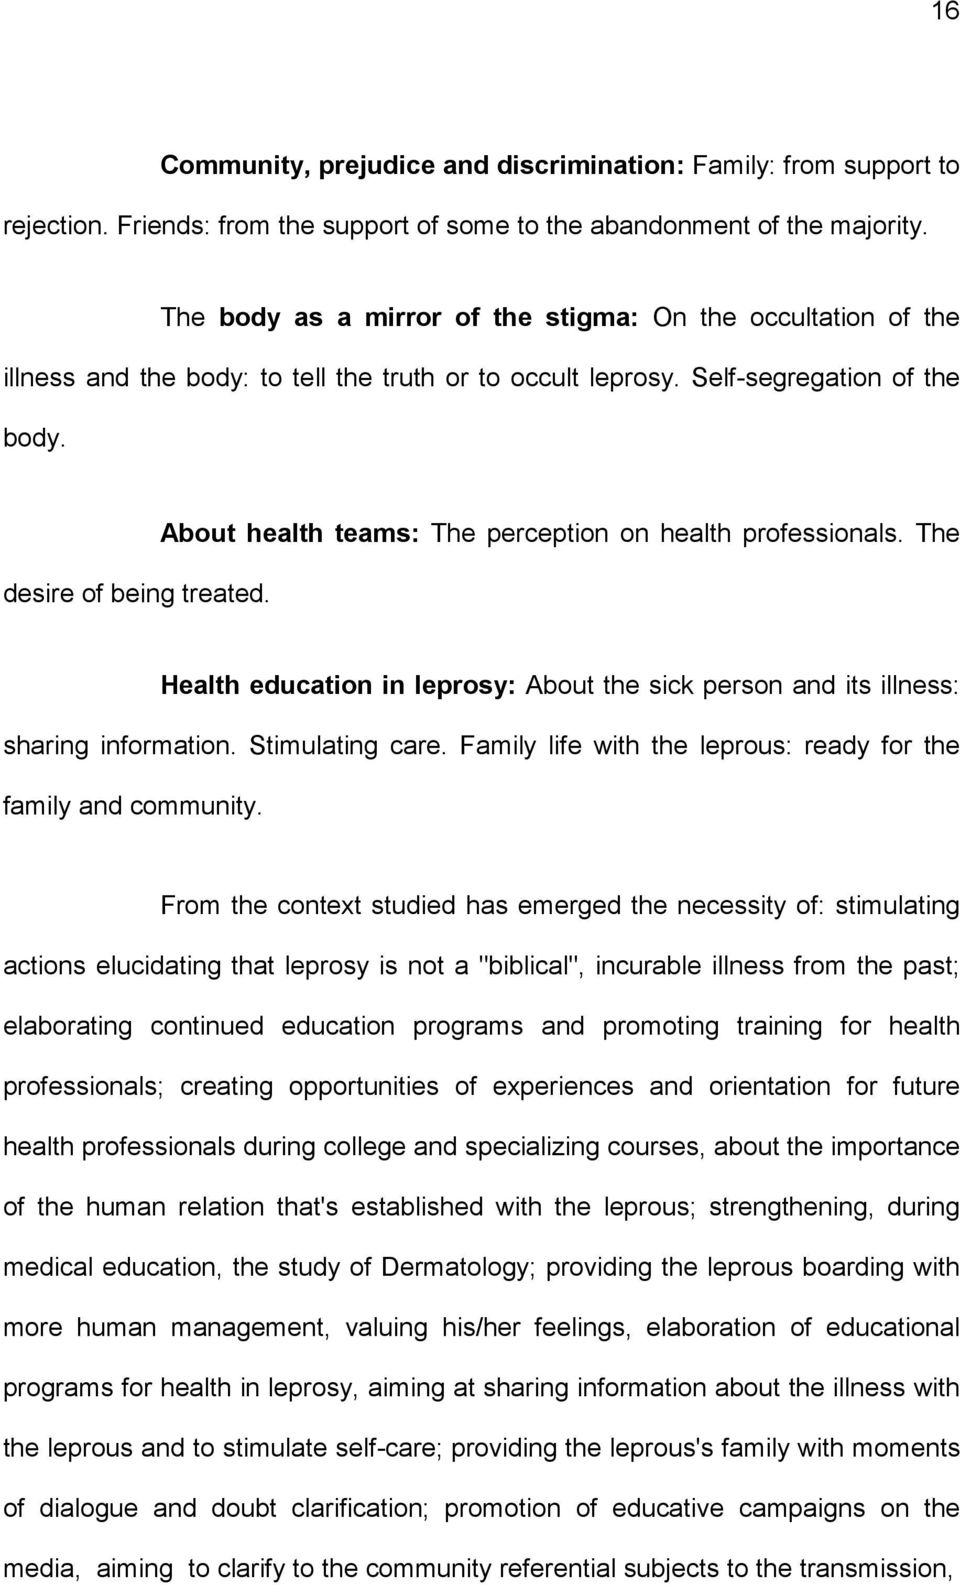 About health teams: The perception on health professionals. The Health education in leprosy: About the sick person and its illness: sharing information. Stimulating care.